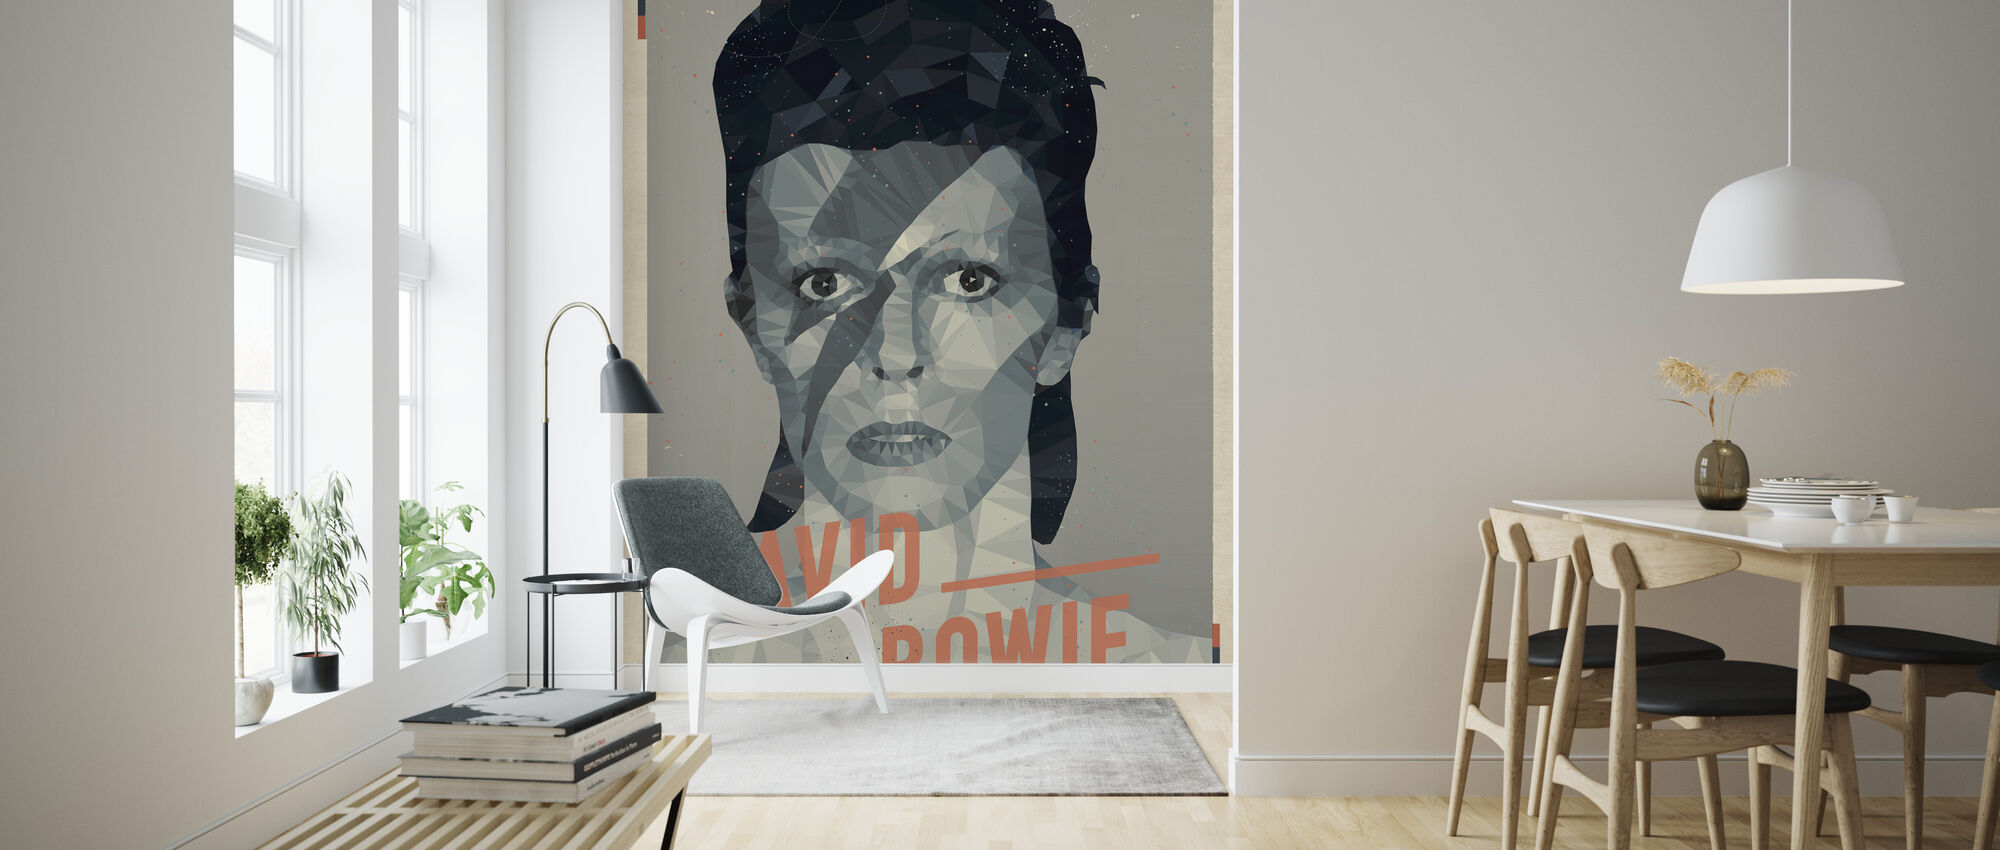 Major Tom - Wallpaper - Living Room